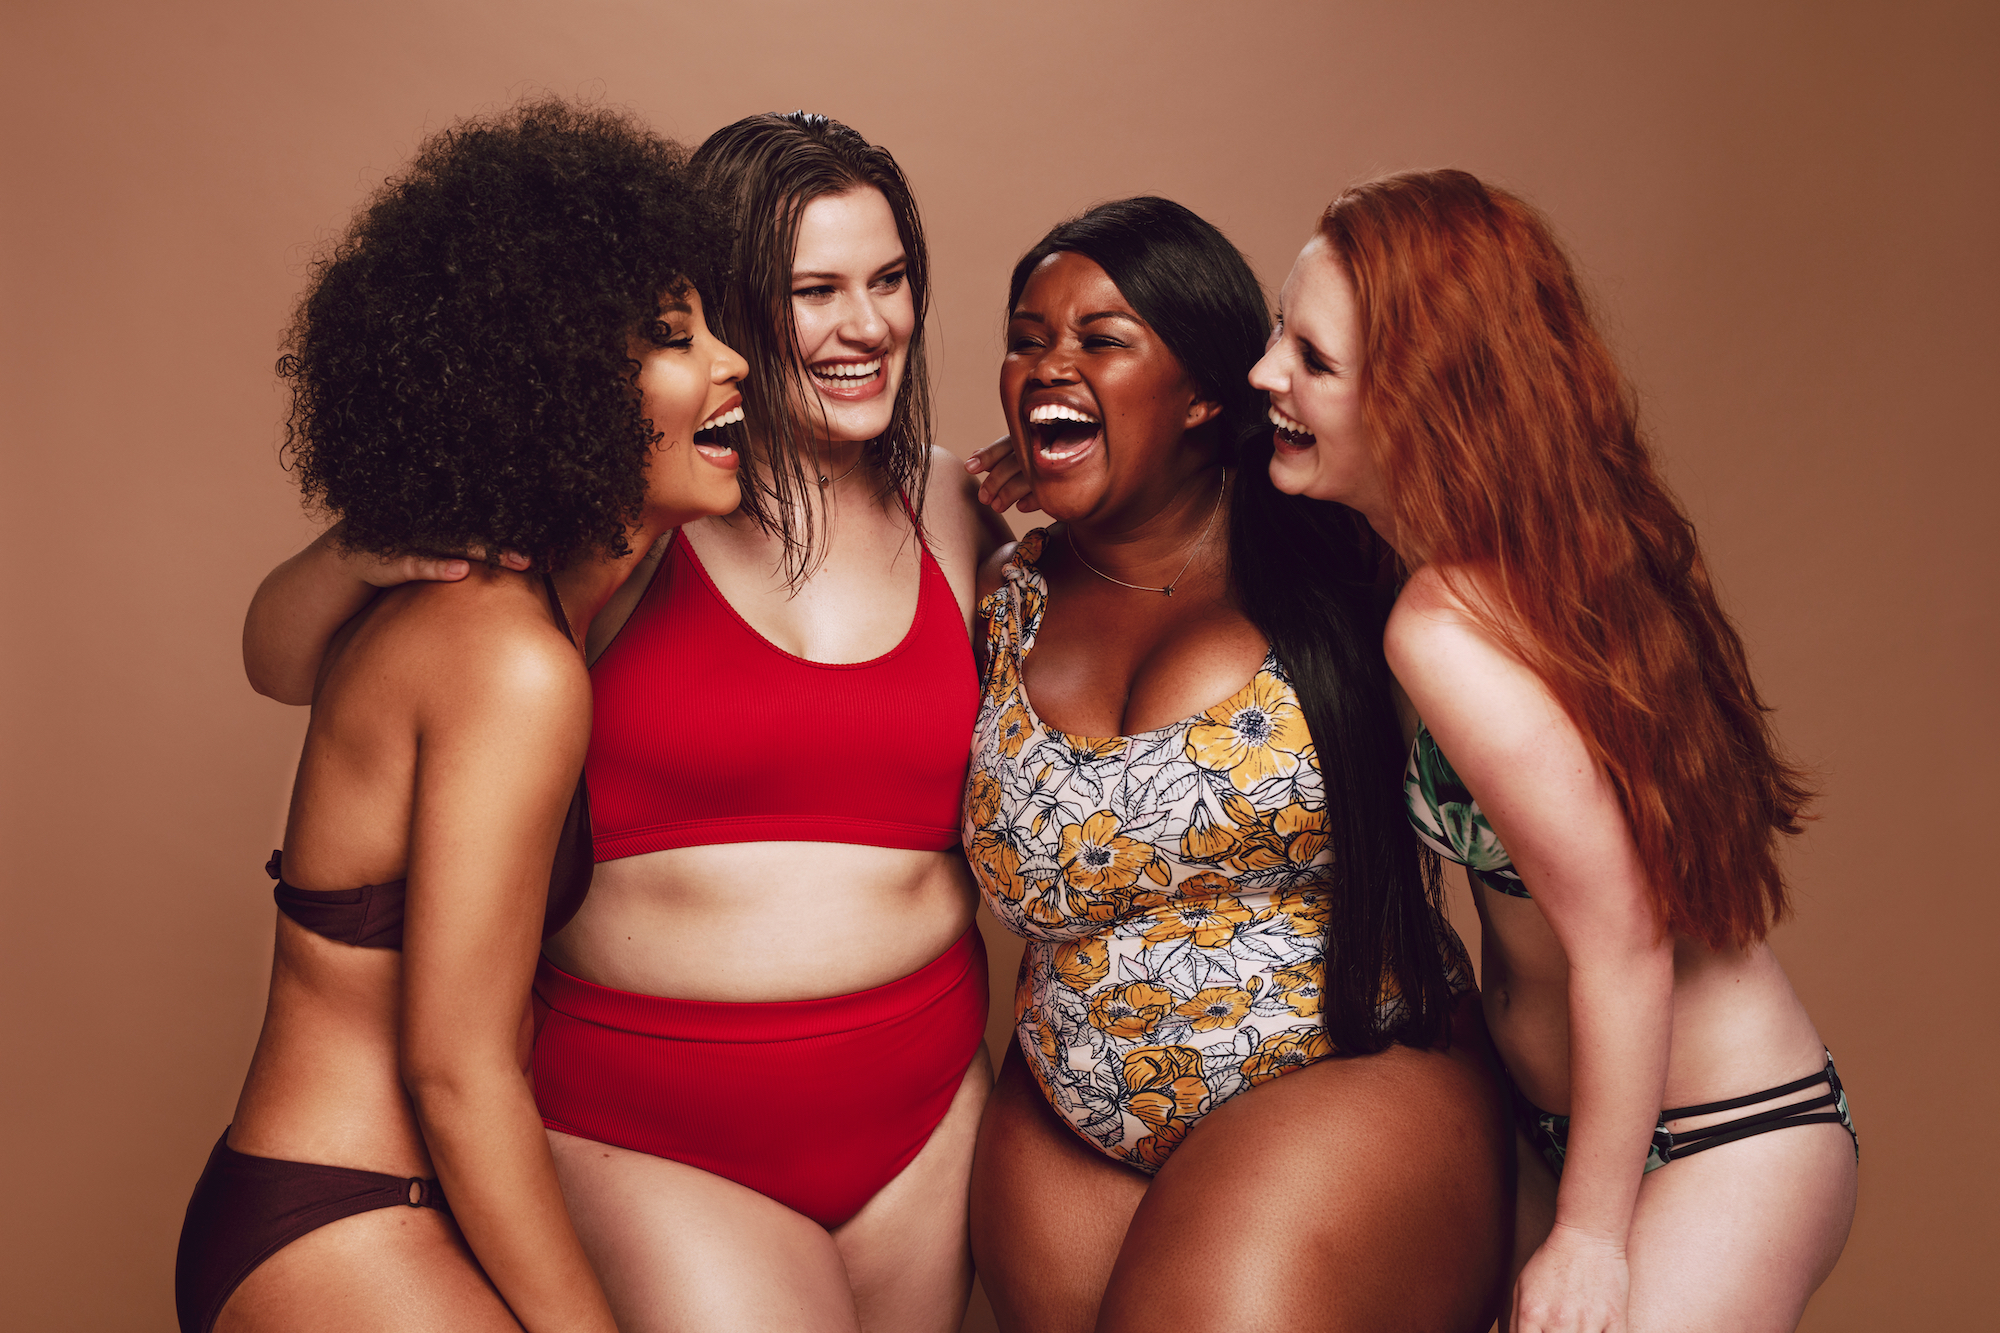 amazon swimsuits, plus-size swimsuits, affordable swimsuits